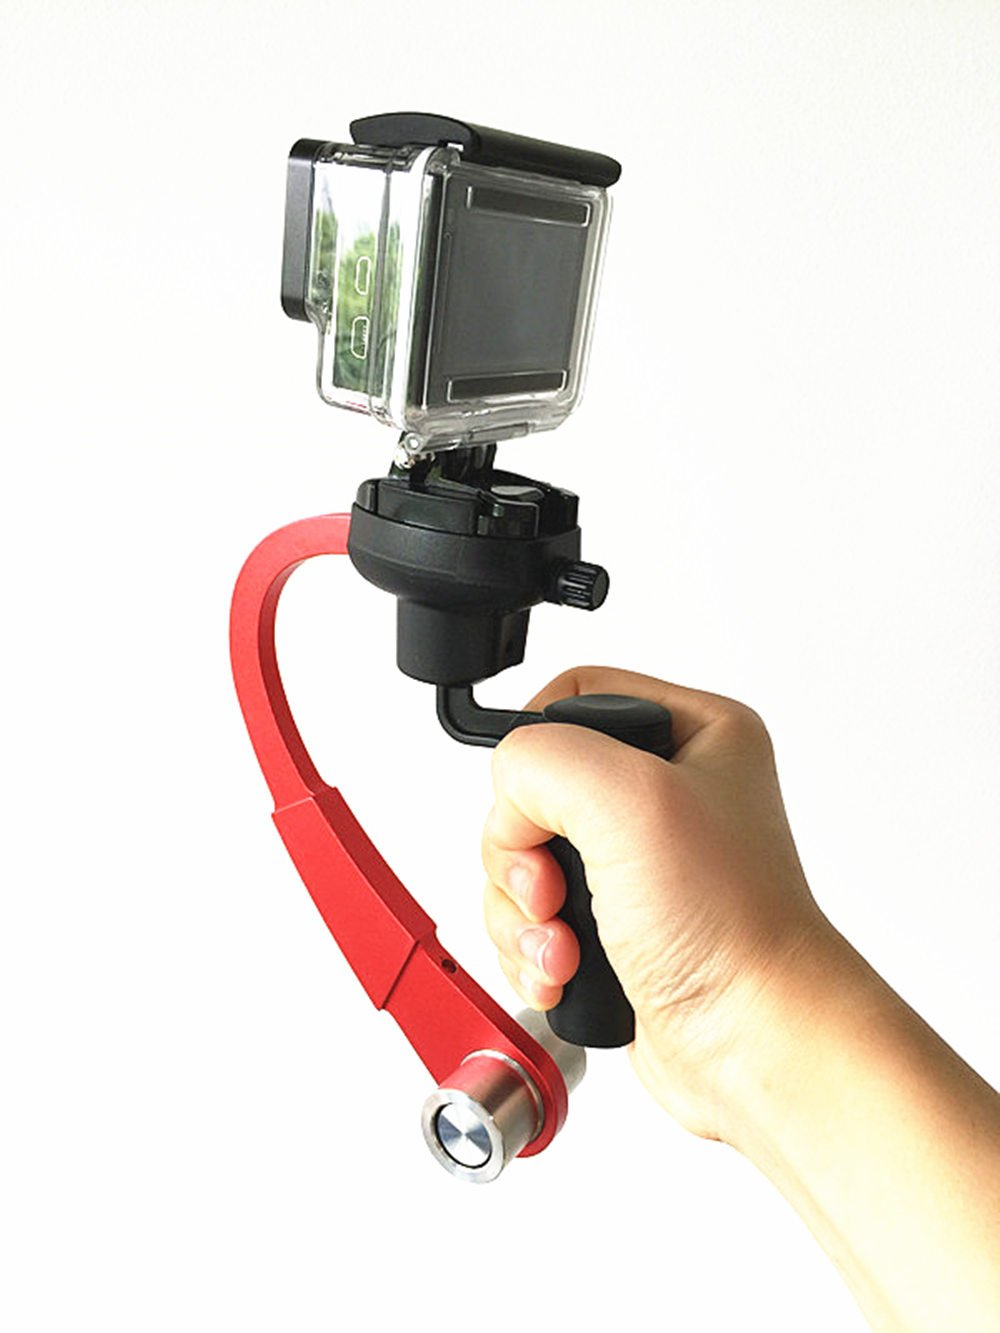 JINSE Mini Handheld Stabilizer and grip for Gopro Hero 4/3+/3/2 Sj4000 (Red)